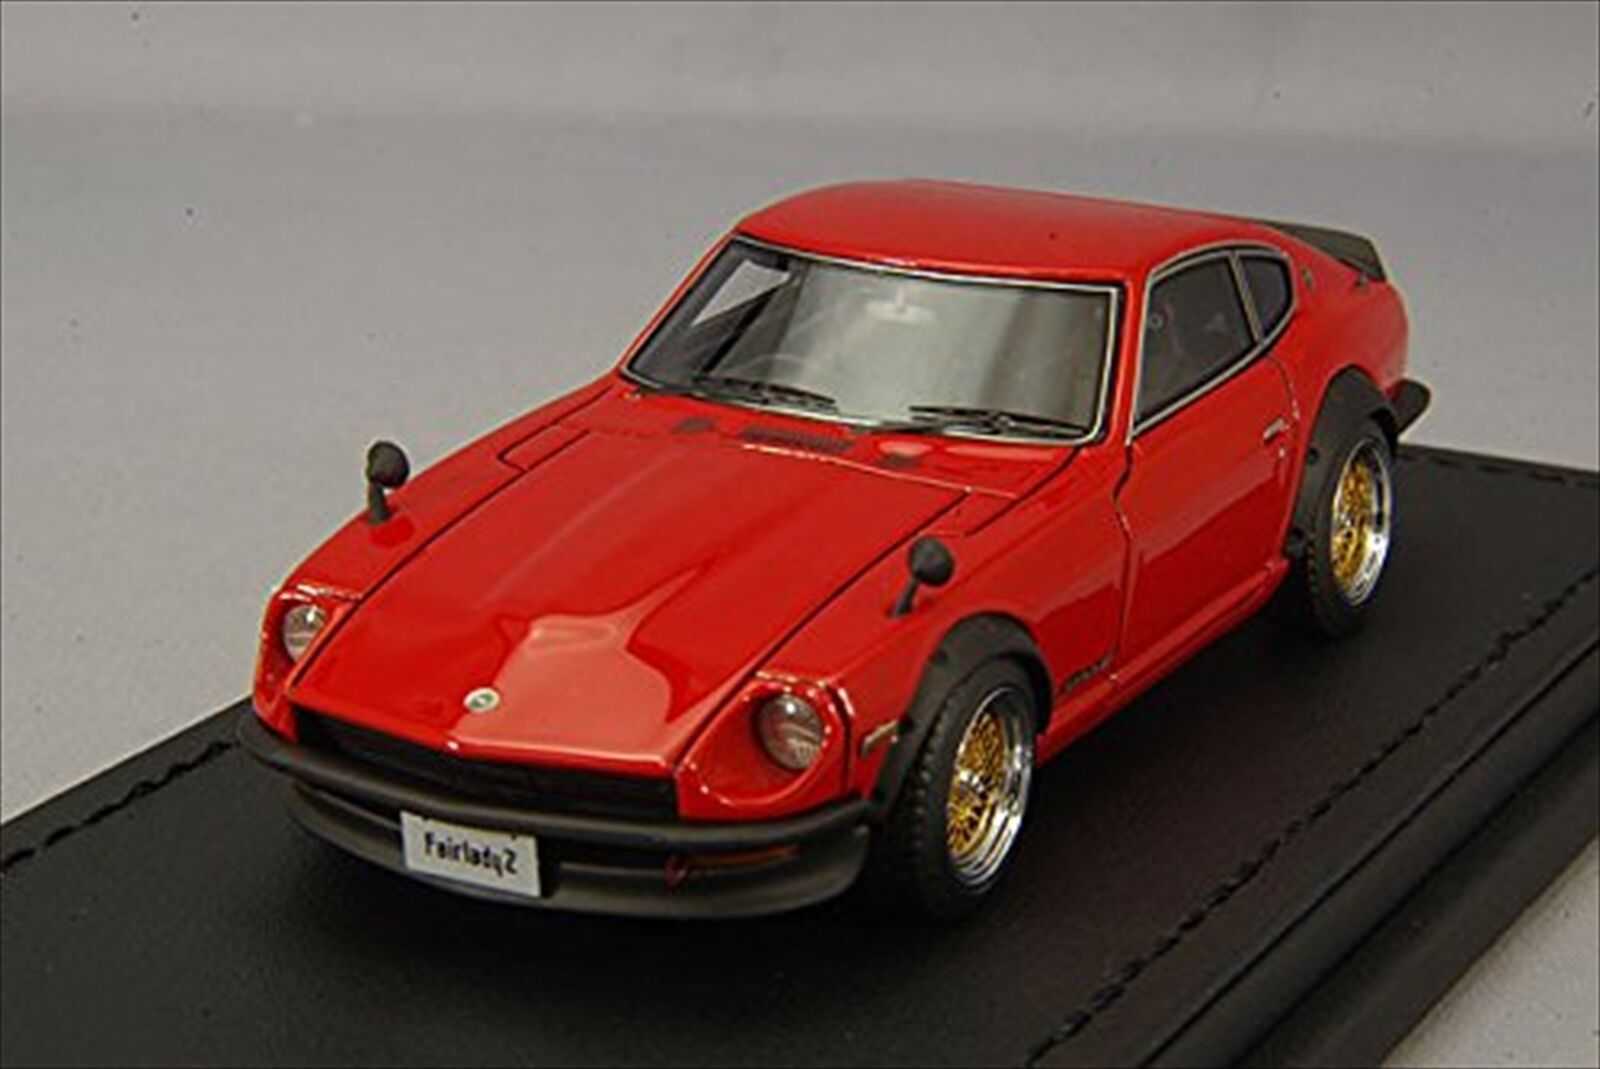 Zündung modell 1   43 nissan fairlady zs30 rote harz modell ig0779